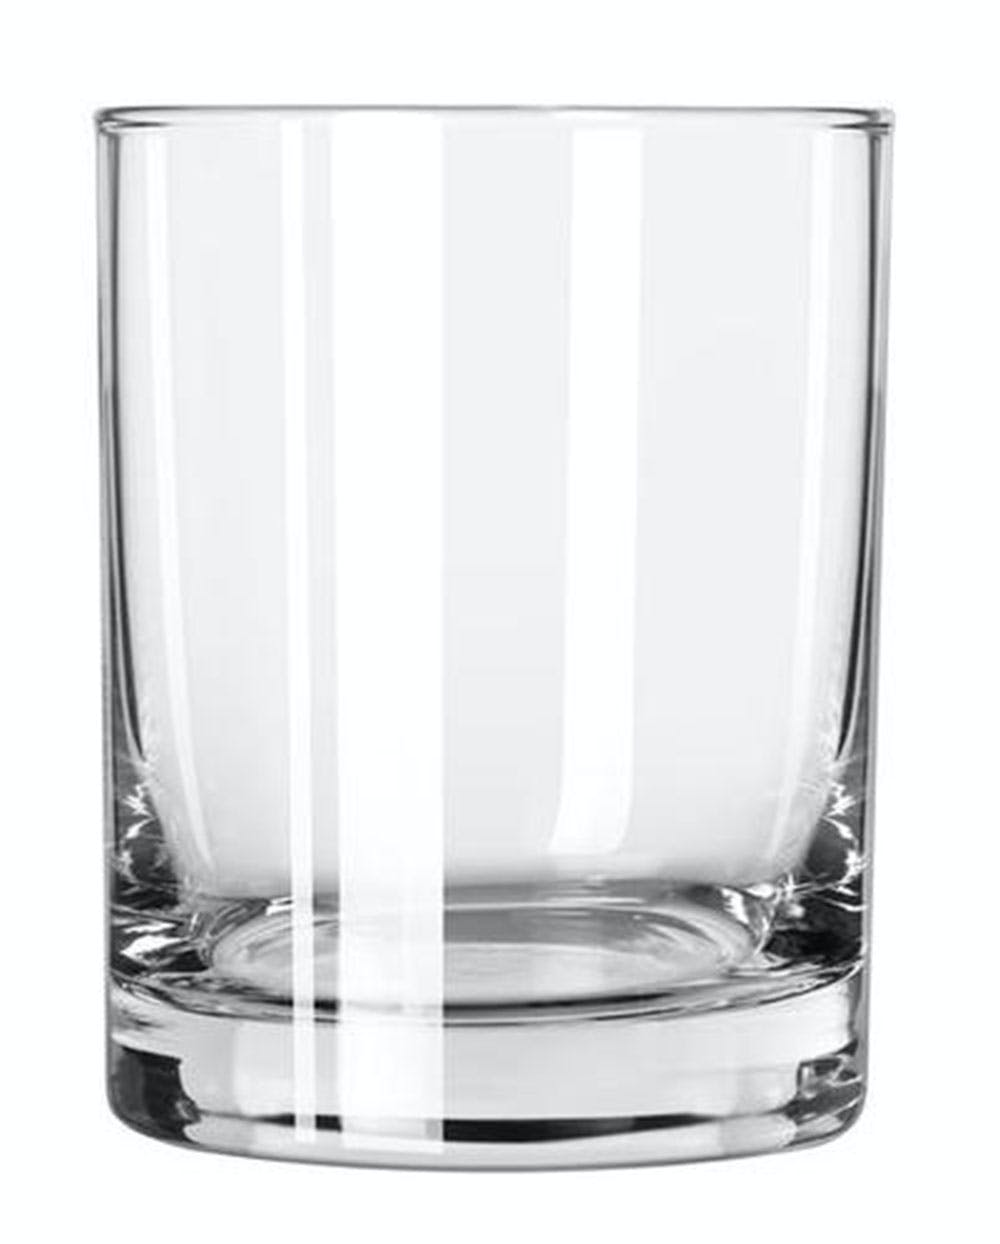 G3232 - 14oz Double Old Fashioned Glass Bar glassware sold by PyroGraphics